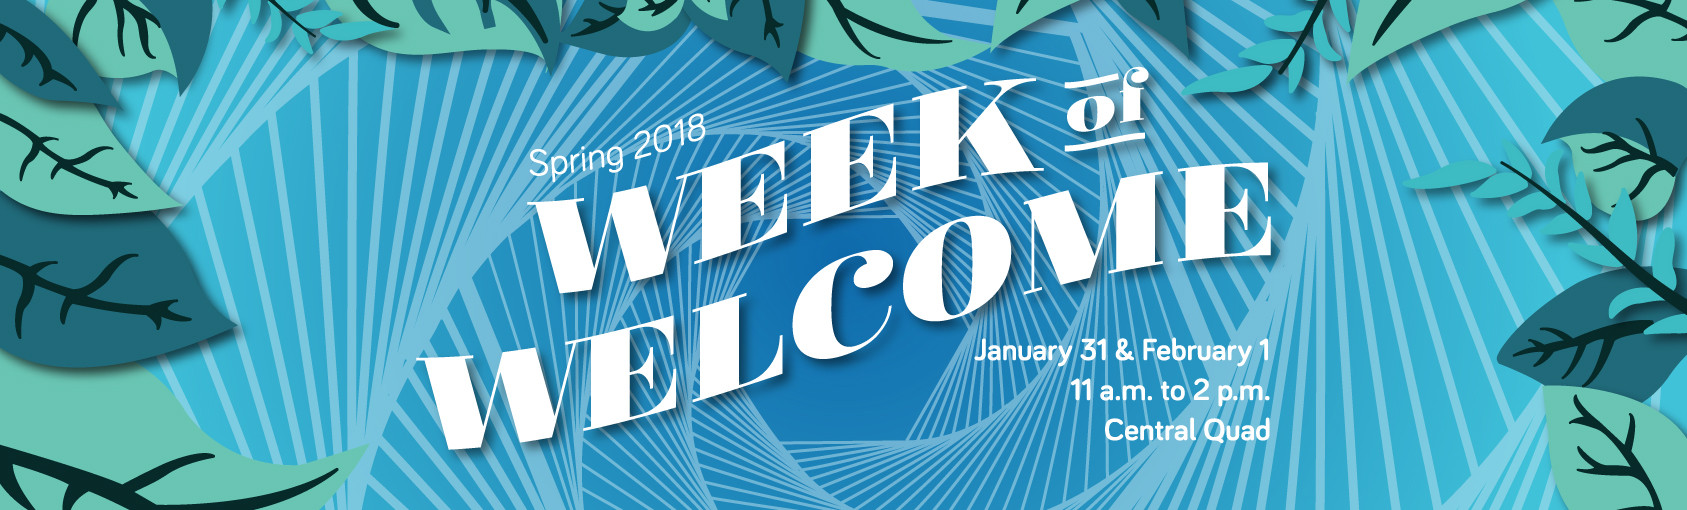 Week of Welcome 2018 banner